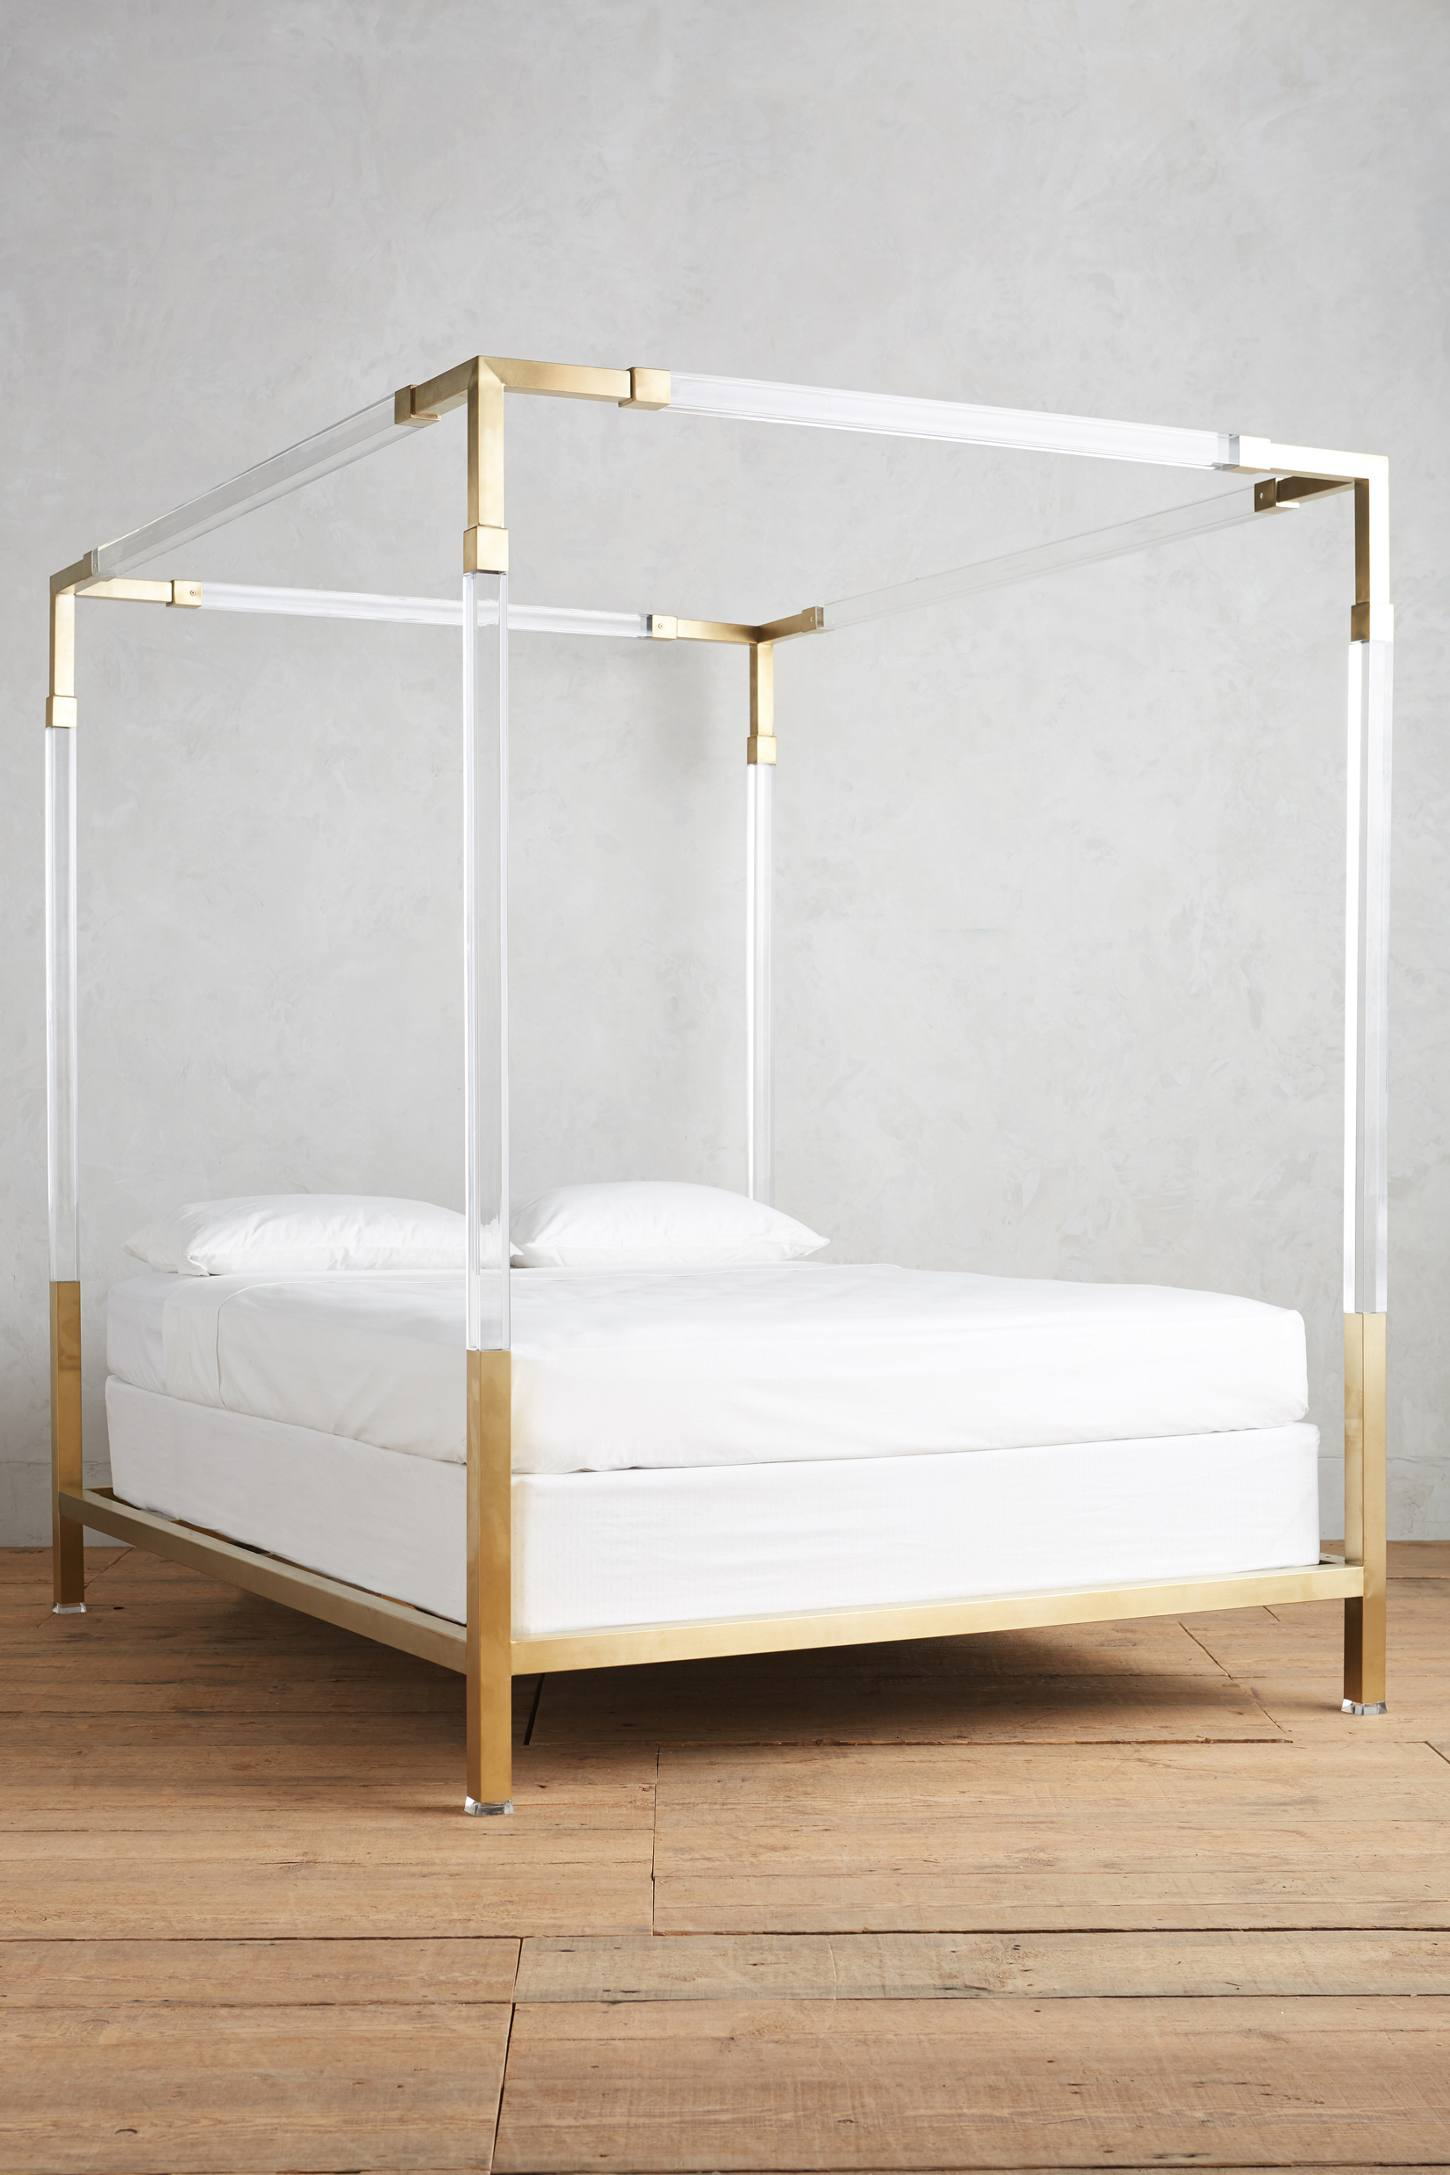 French Dining Room Set Oscarine Lucite Four Poster Bed Anthropologie